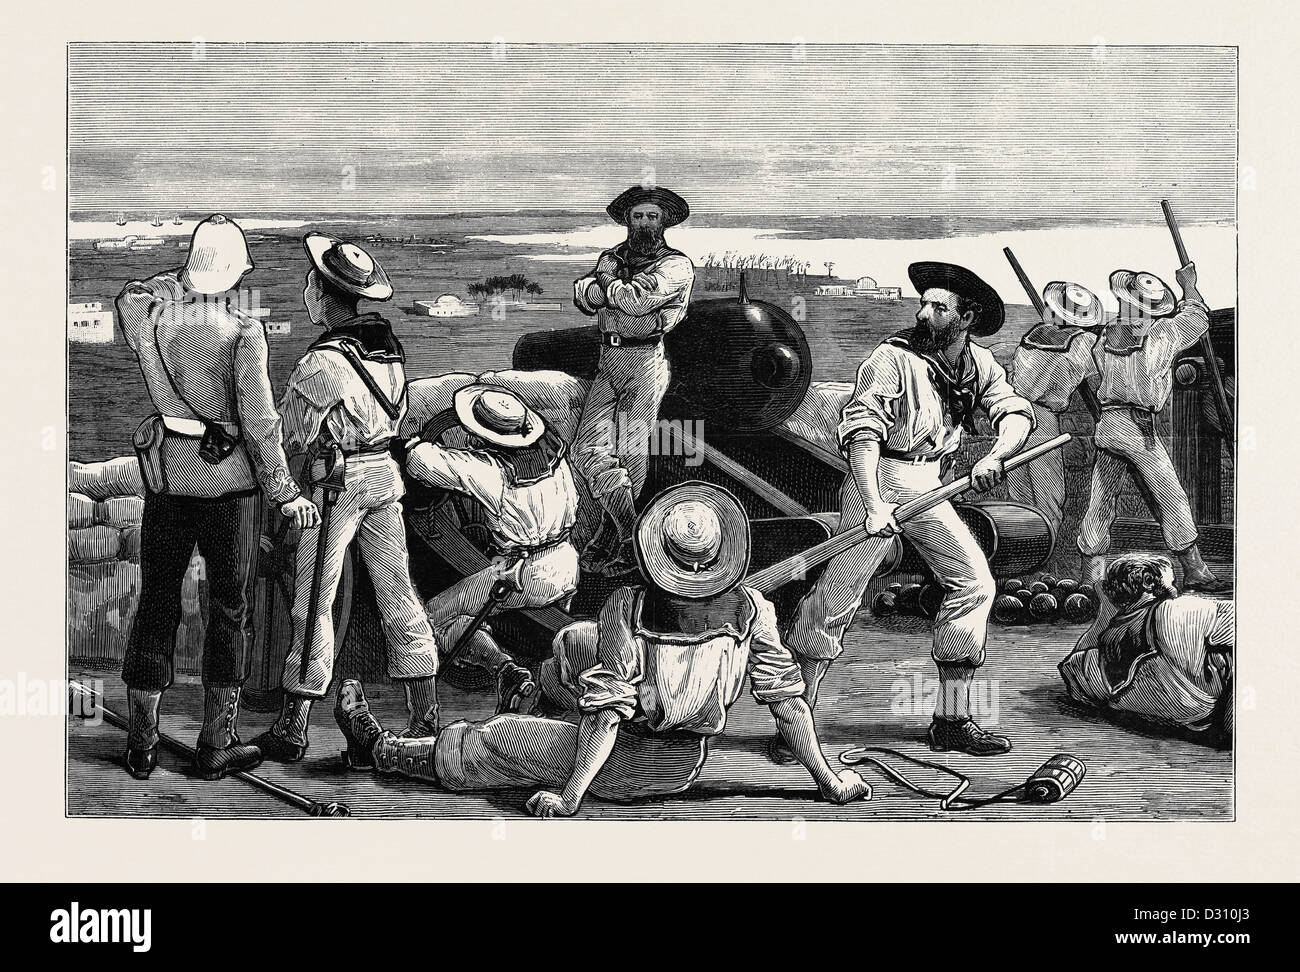 THE WAR IN EGYPT: BLUE-JACKETS IN POSSESSION AT FORT KOM-EL-DIK, ALEXANDRIA - Stock Image